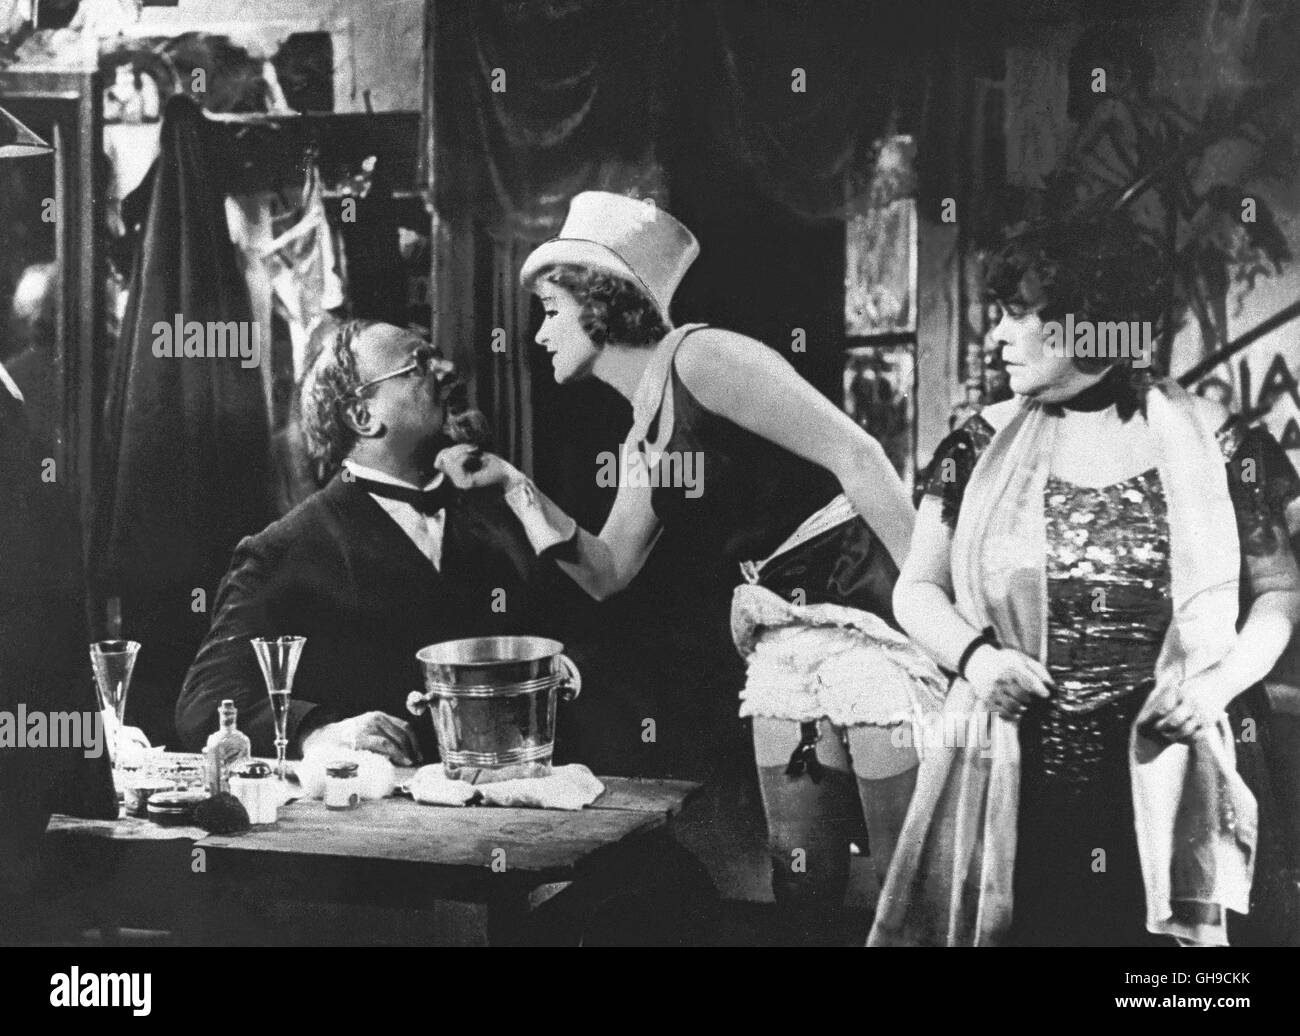 der blaue engel d 1930 josef von sternberg szene mit emil jannings stock photo 113918887 alamy. Black Bedroom Furniture Sets. Home Design Ideas